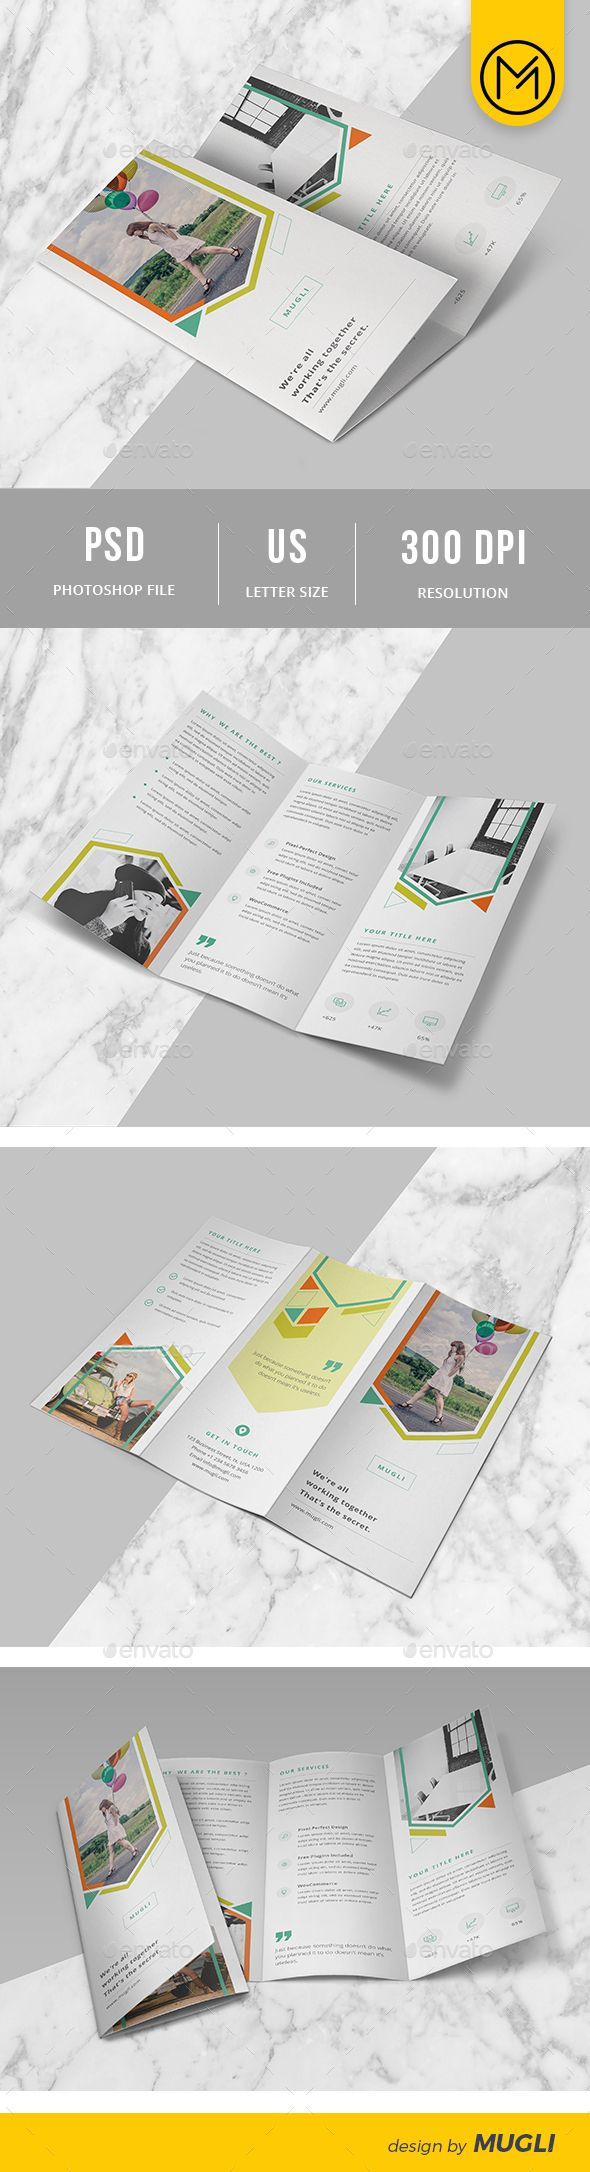 Best Best TriFold Brochure Designs Images On